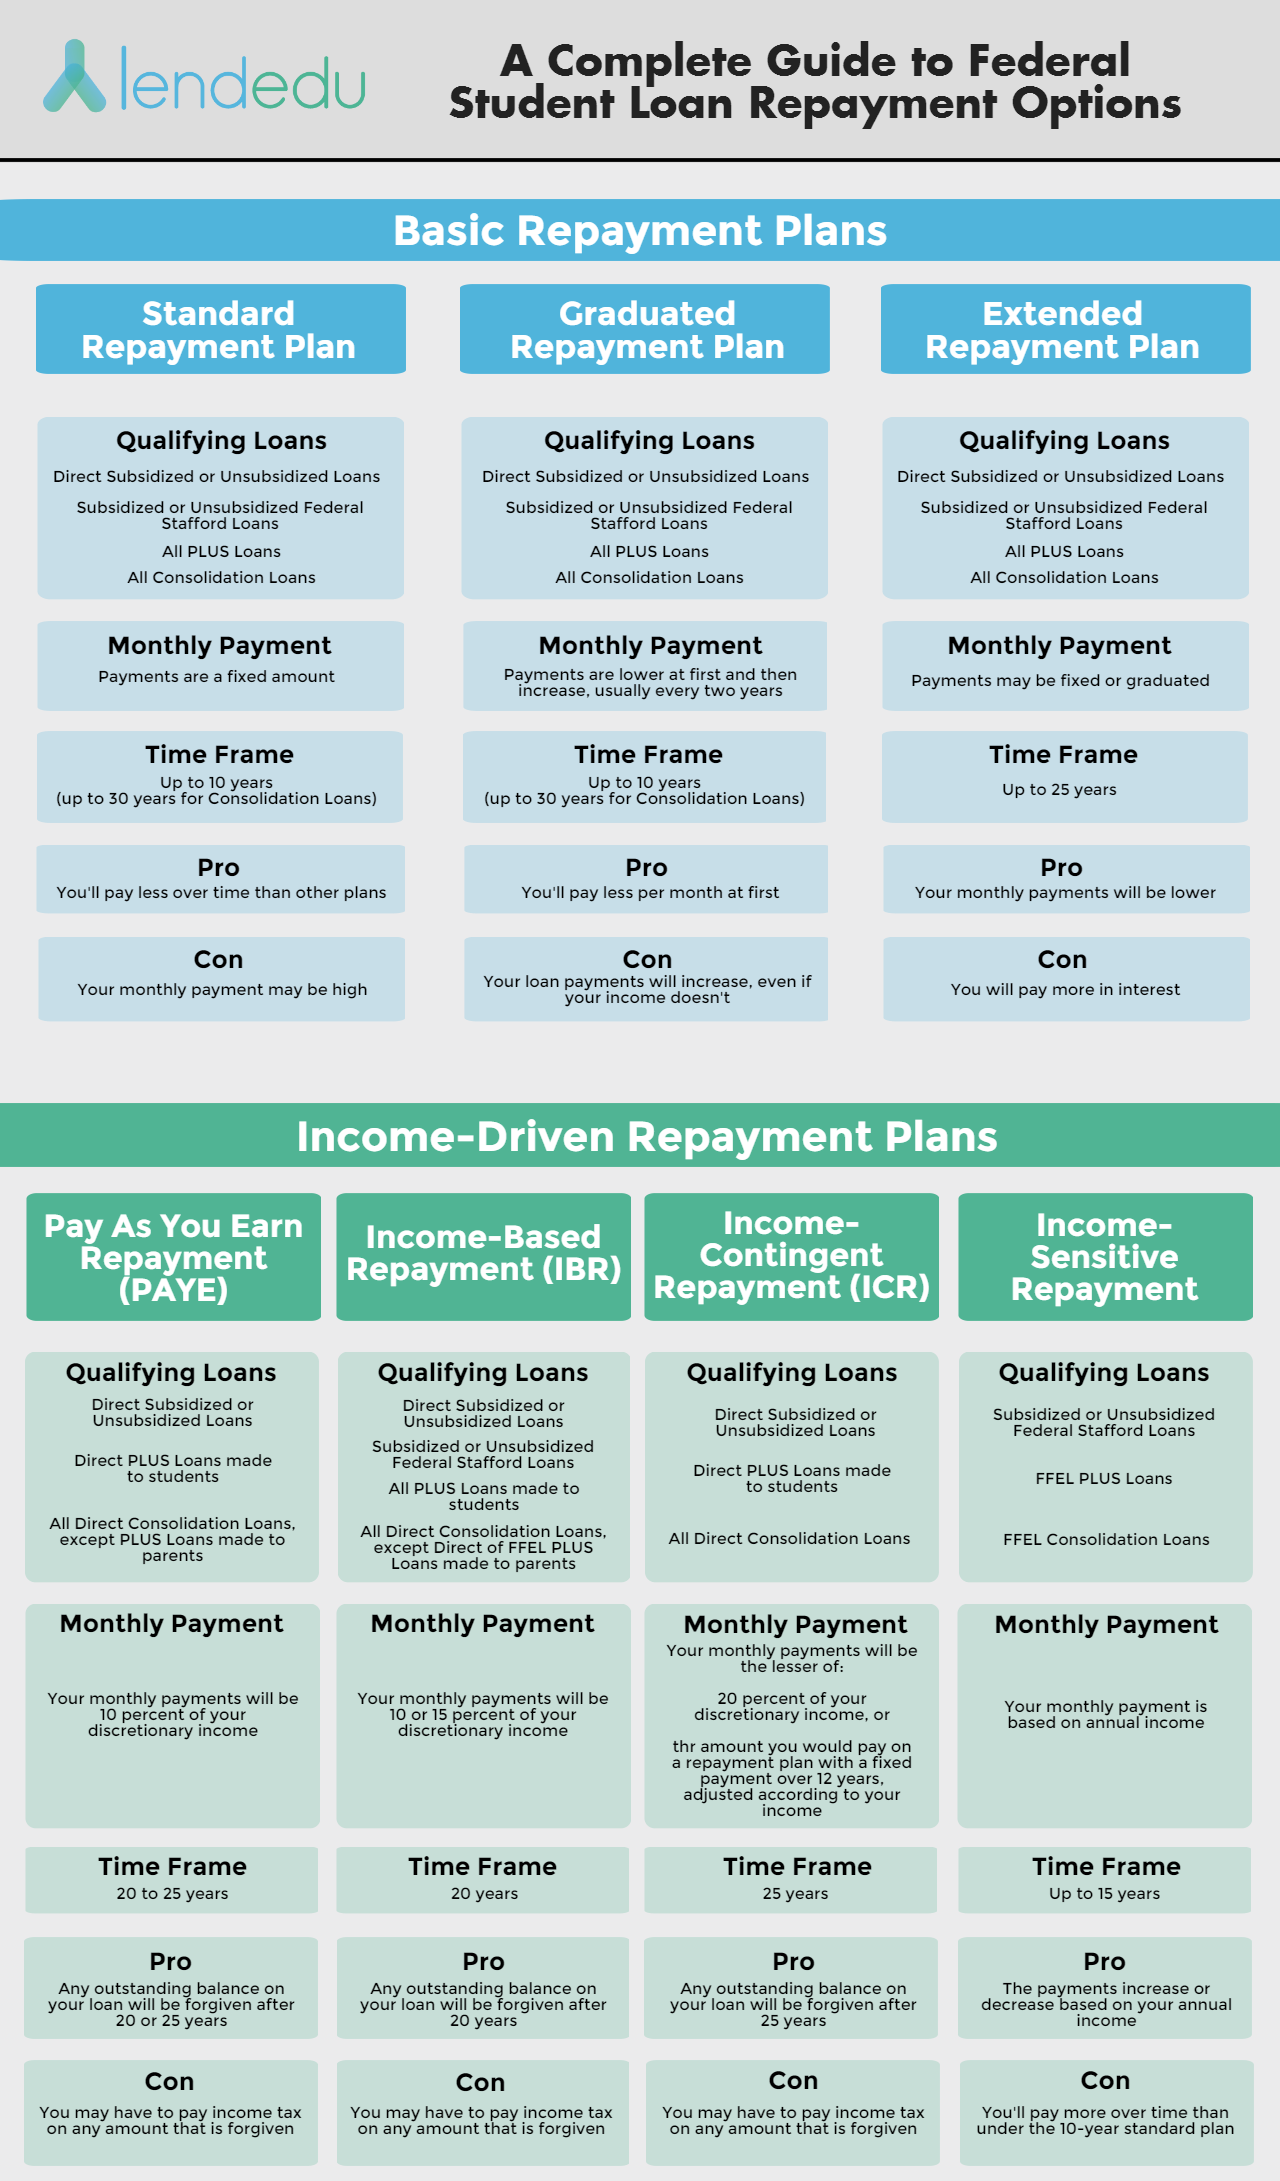 Online Auto Insurance >> A Complete Guide to Federal Student Loan Repayment Options ...